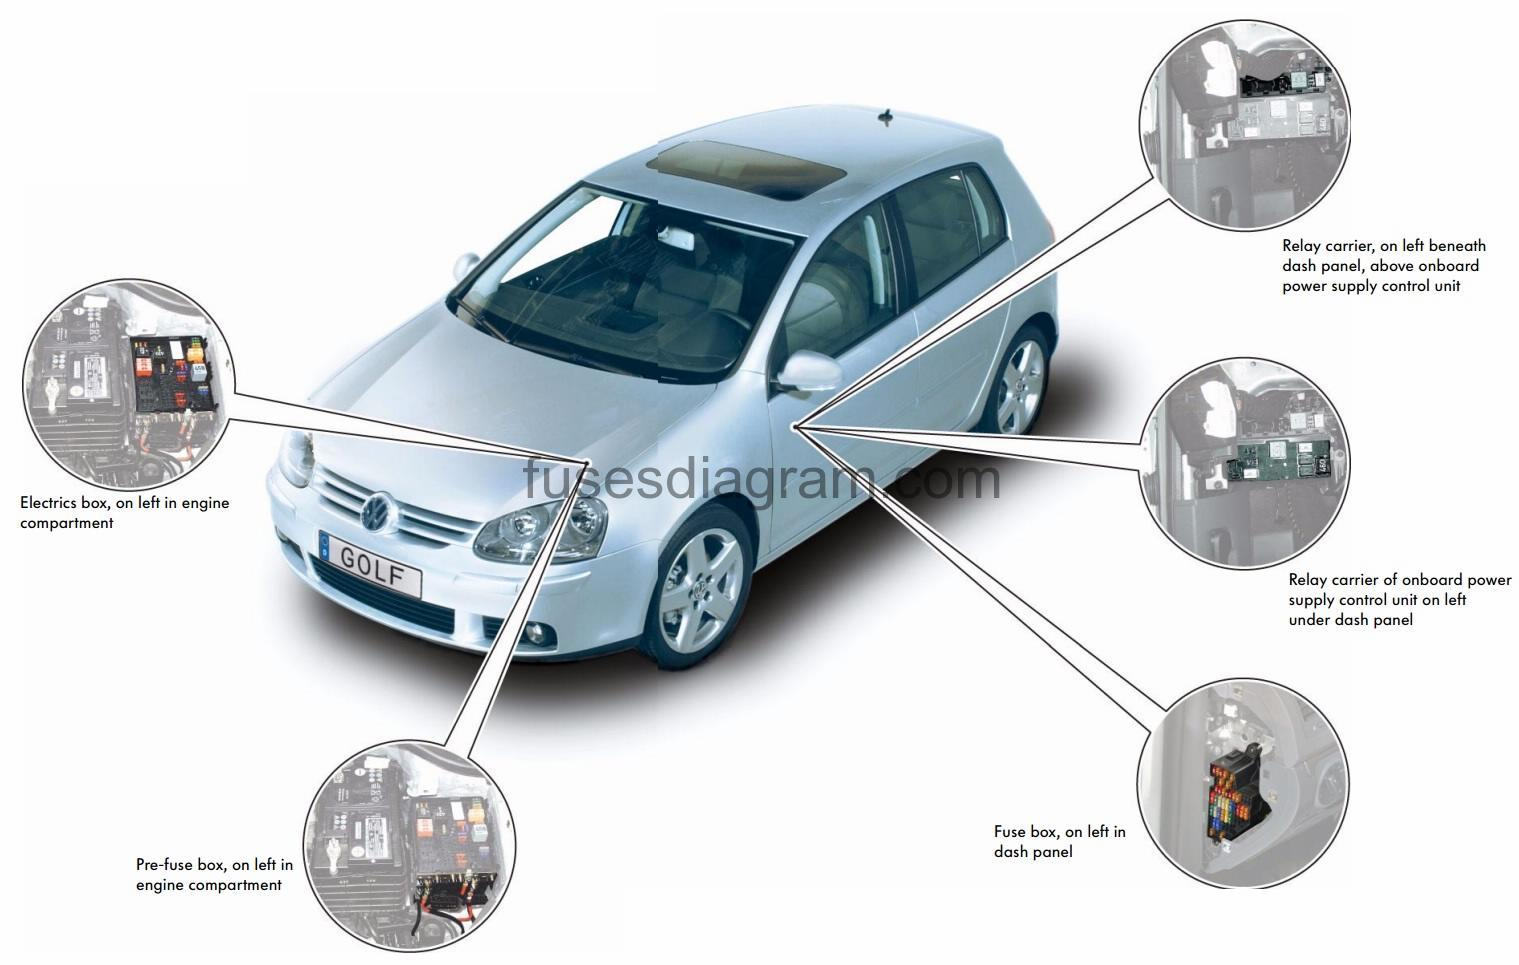 2012 vw golf fuse box schematics wiring diagrams u2022 rh seniorlivinguniversity co 2012 vw golf tdi fuse box 2012 vw golf fuse box